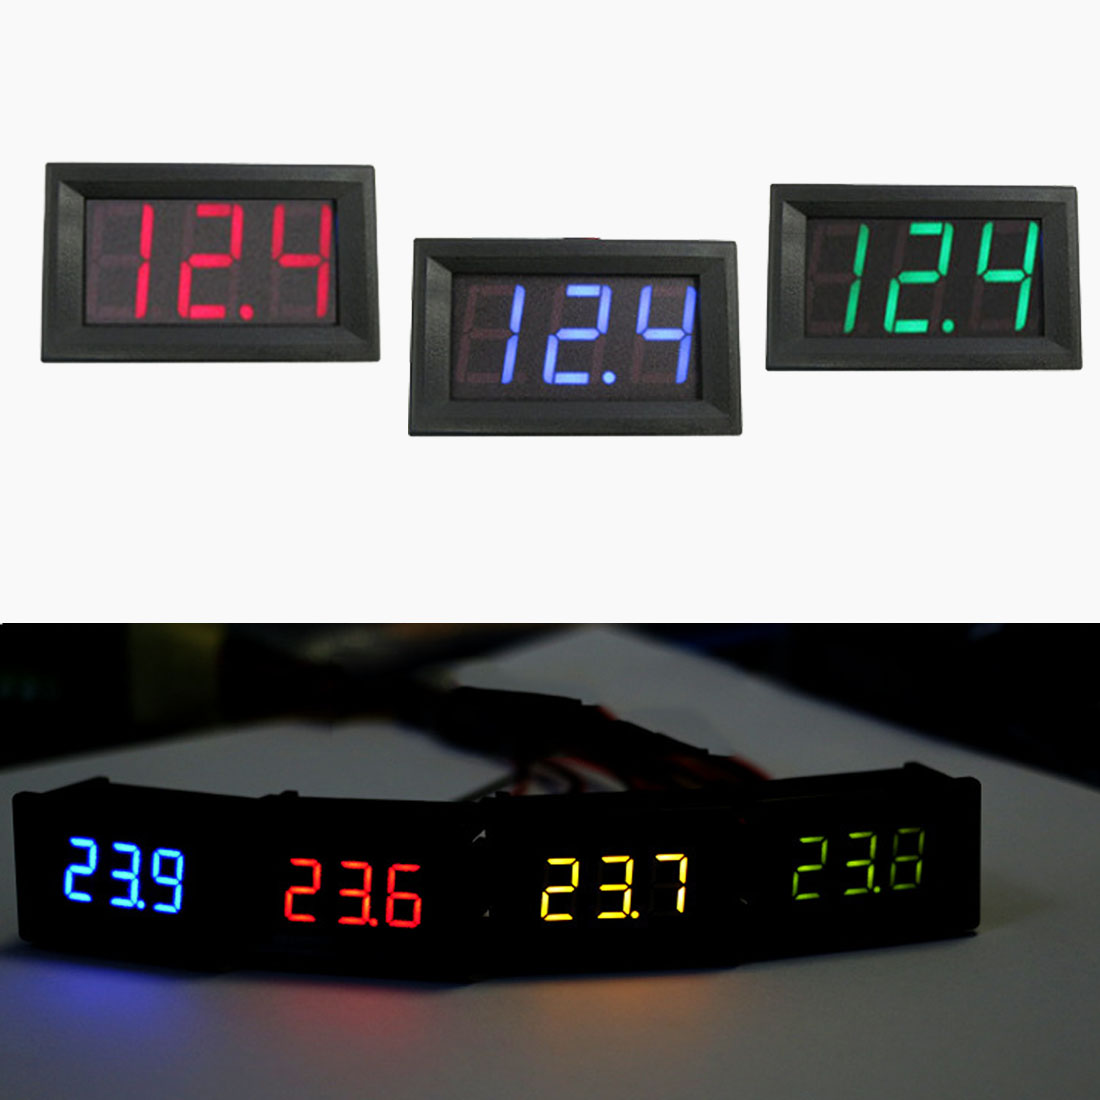 цена на Voltage indicator 0.56 inch LED display DC 4.50v-30.0v Household voltmeter 2 line red and black Digital voltmeter